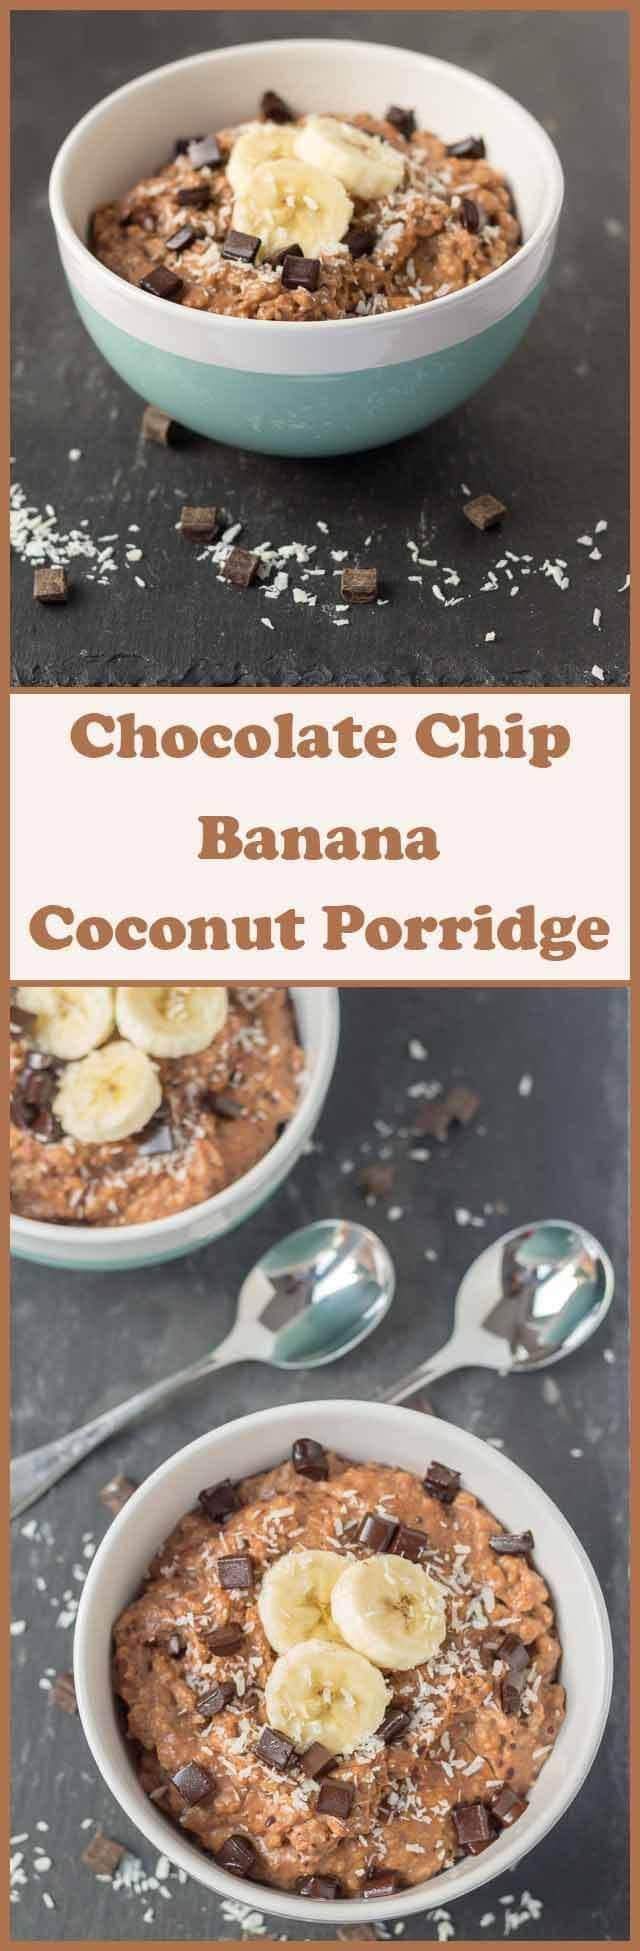 Chocolate chip banana coconut porridge is the perfect brunch start to your weekend. It takes just 5 minutes to combine oats, chocolate chips, banana and coconut milk into this mouthwatering deliciously creamy breakfast lunch!